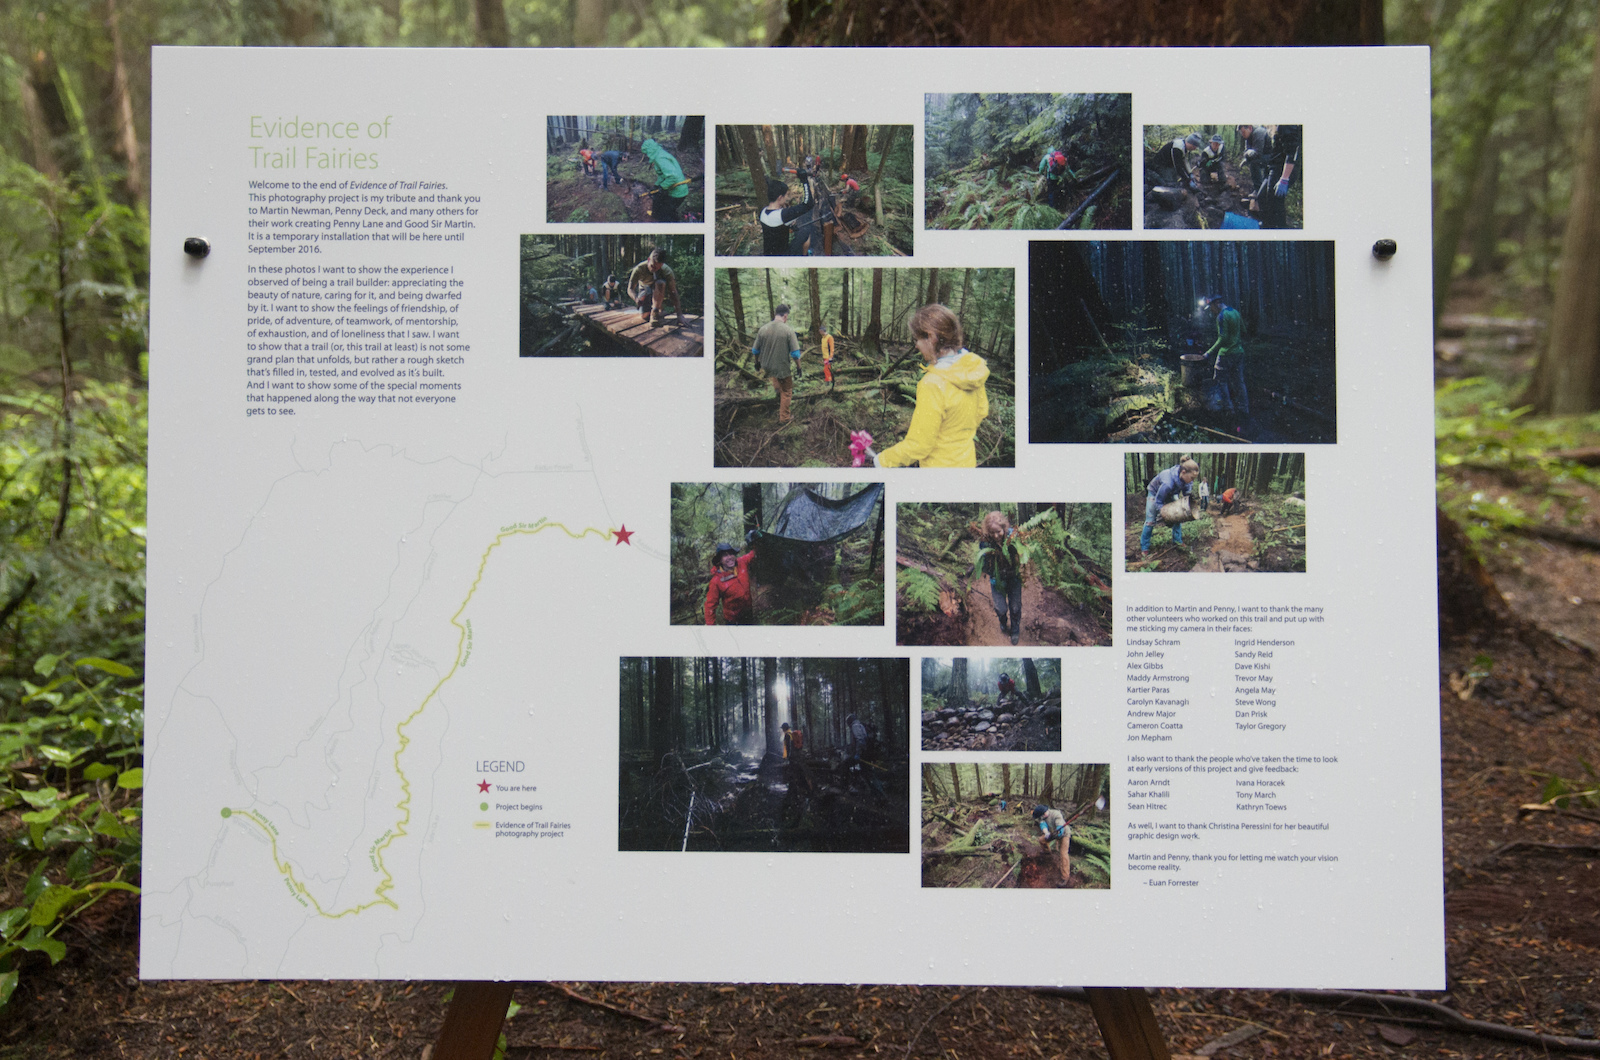 We placed several informational posters along the trail to describe the project and help guide people to see the entire installation.